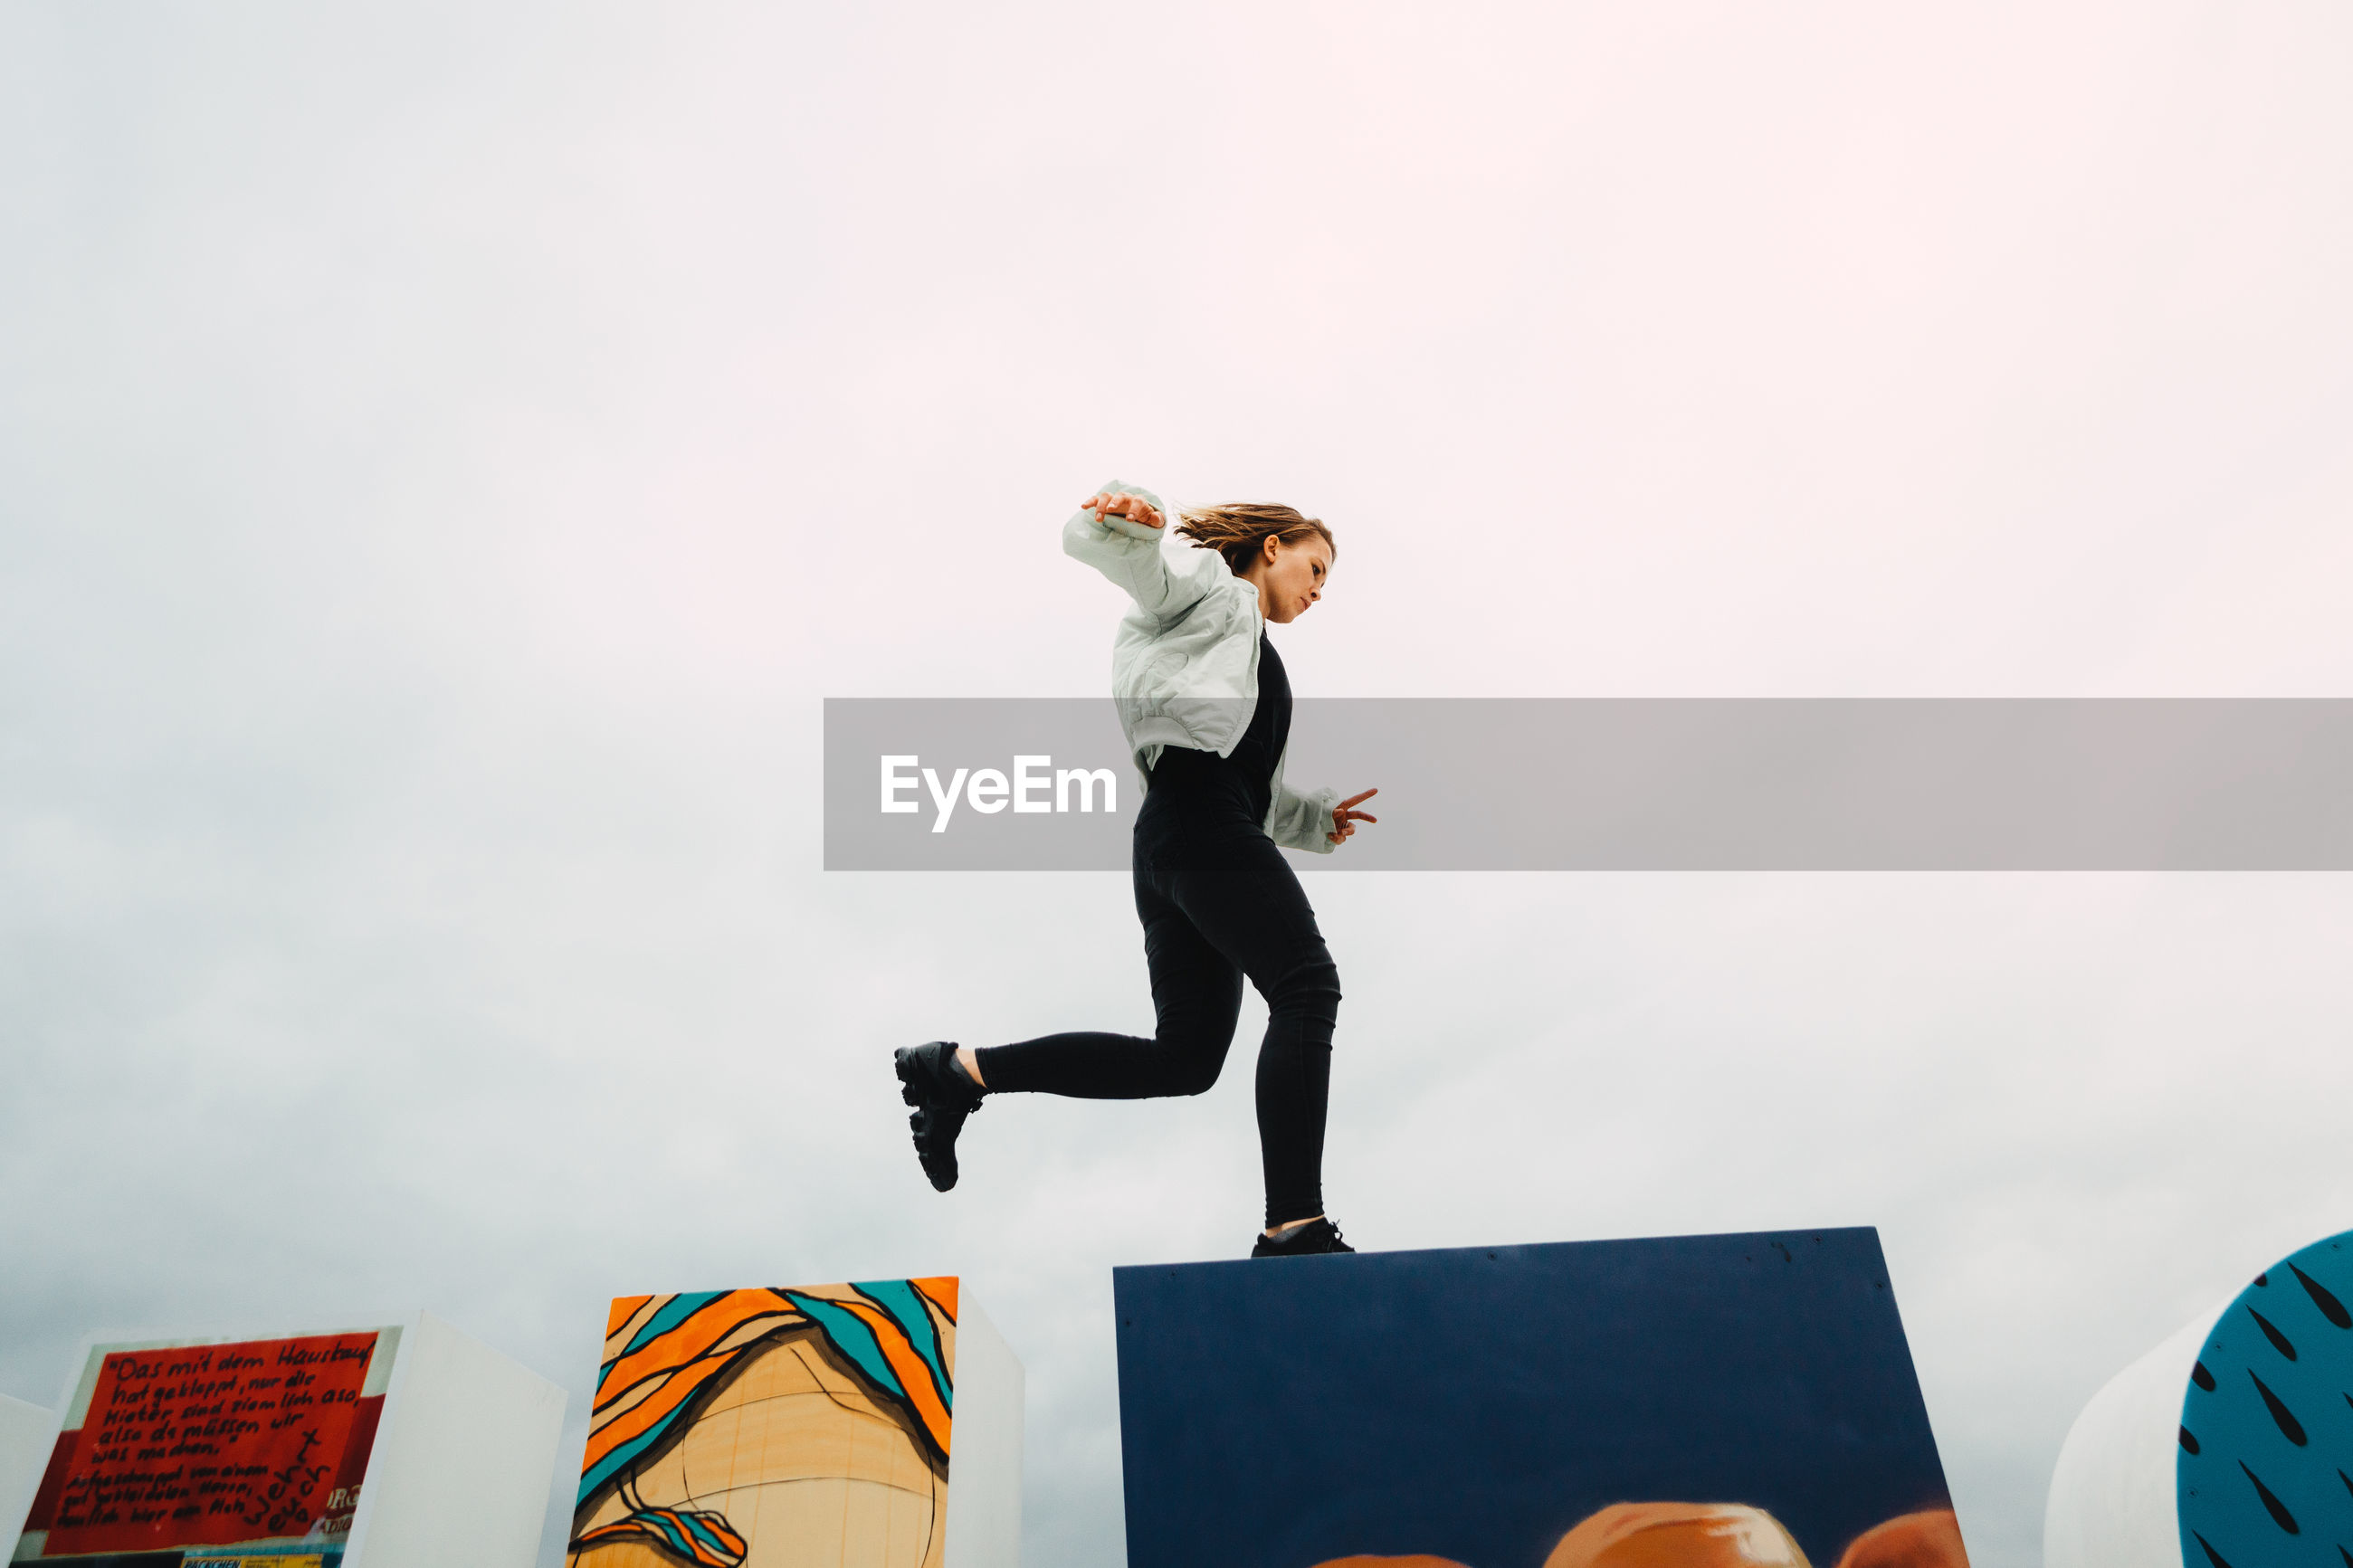 Low angle view of woman jumping over wall against sky